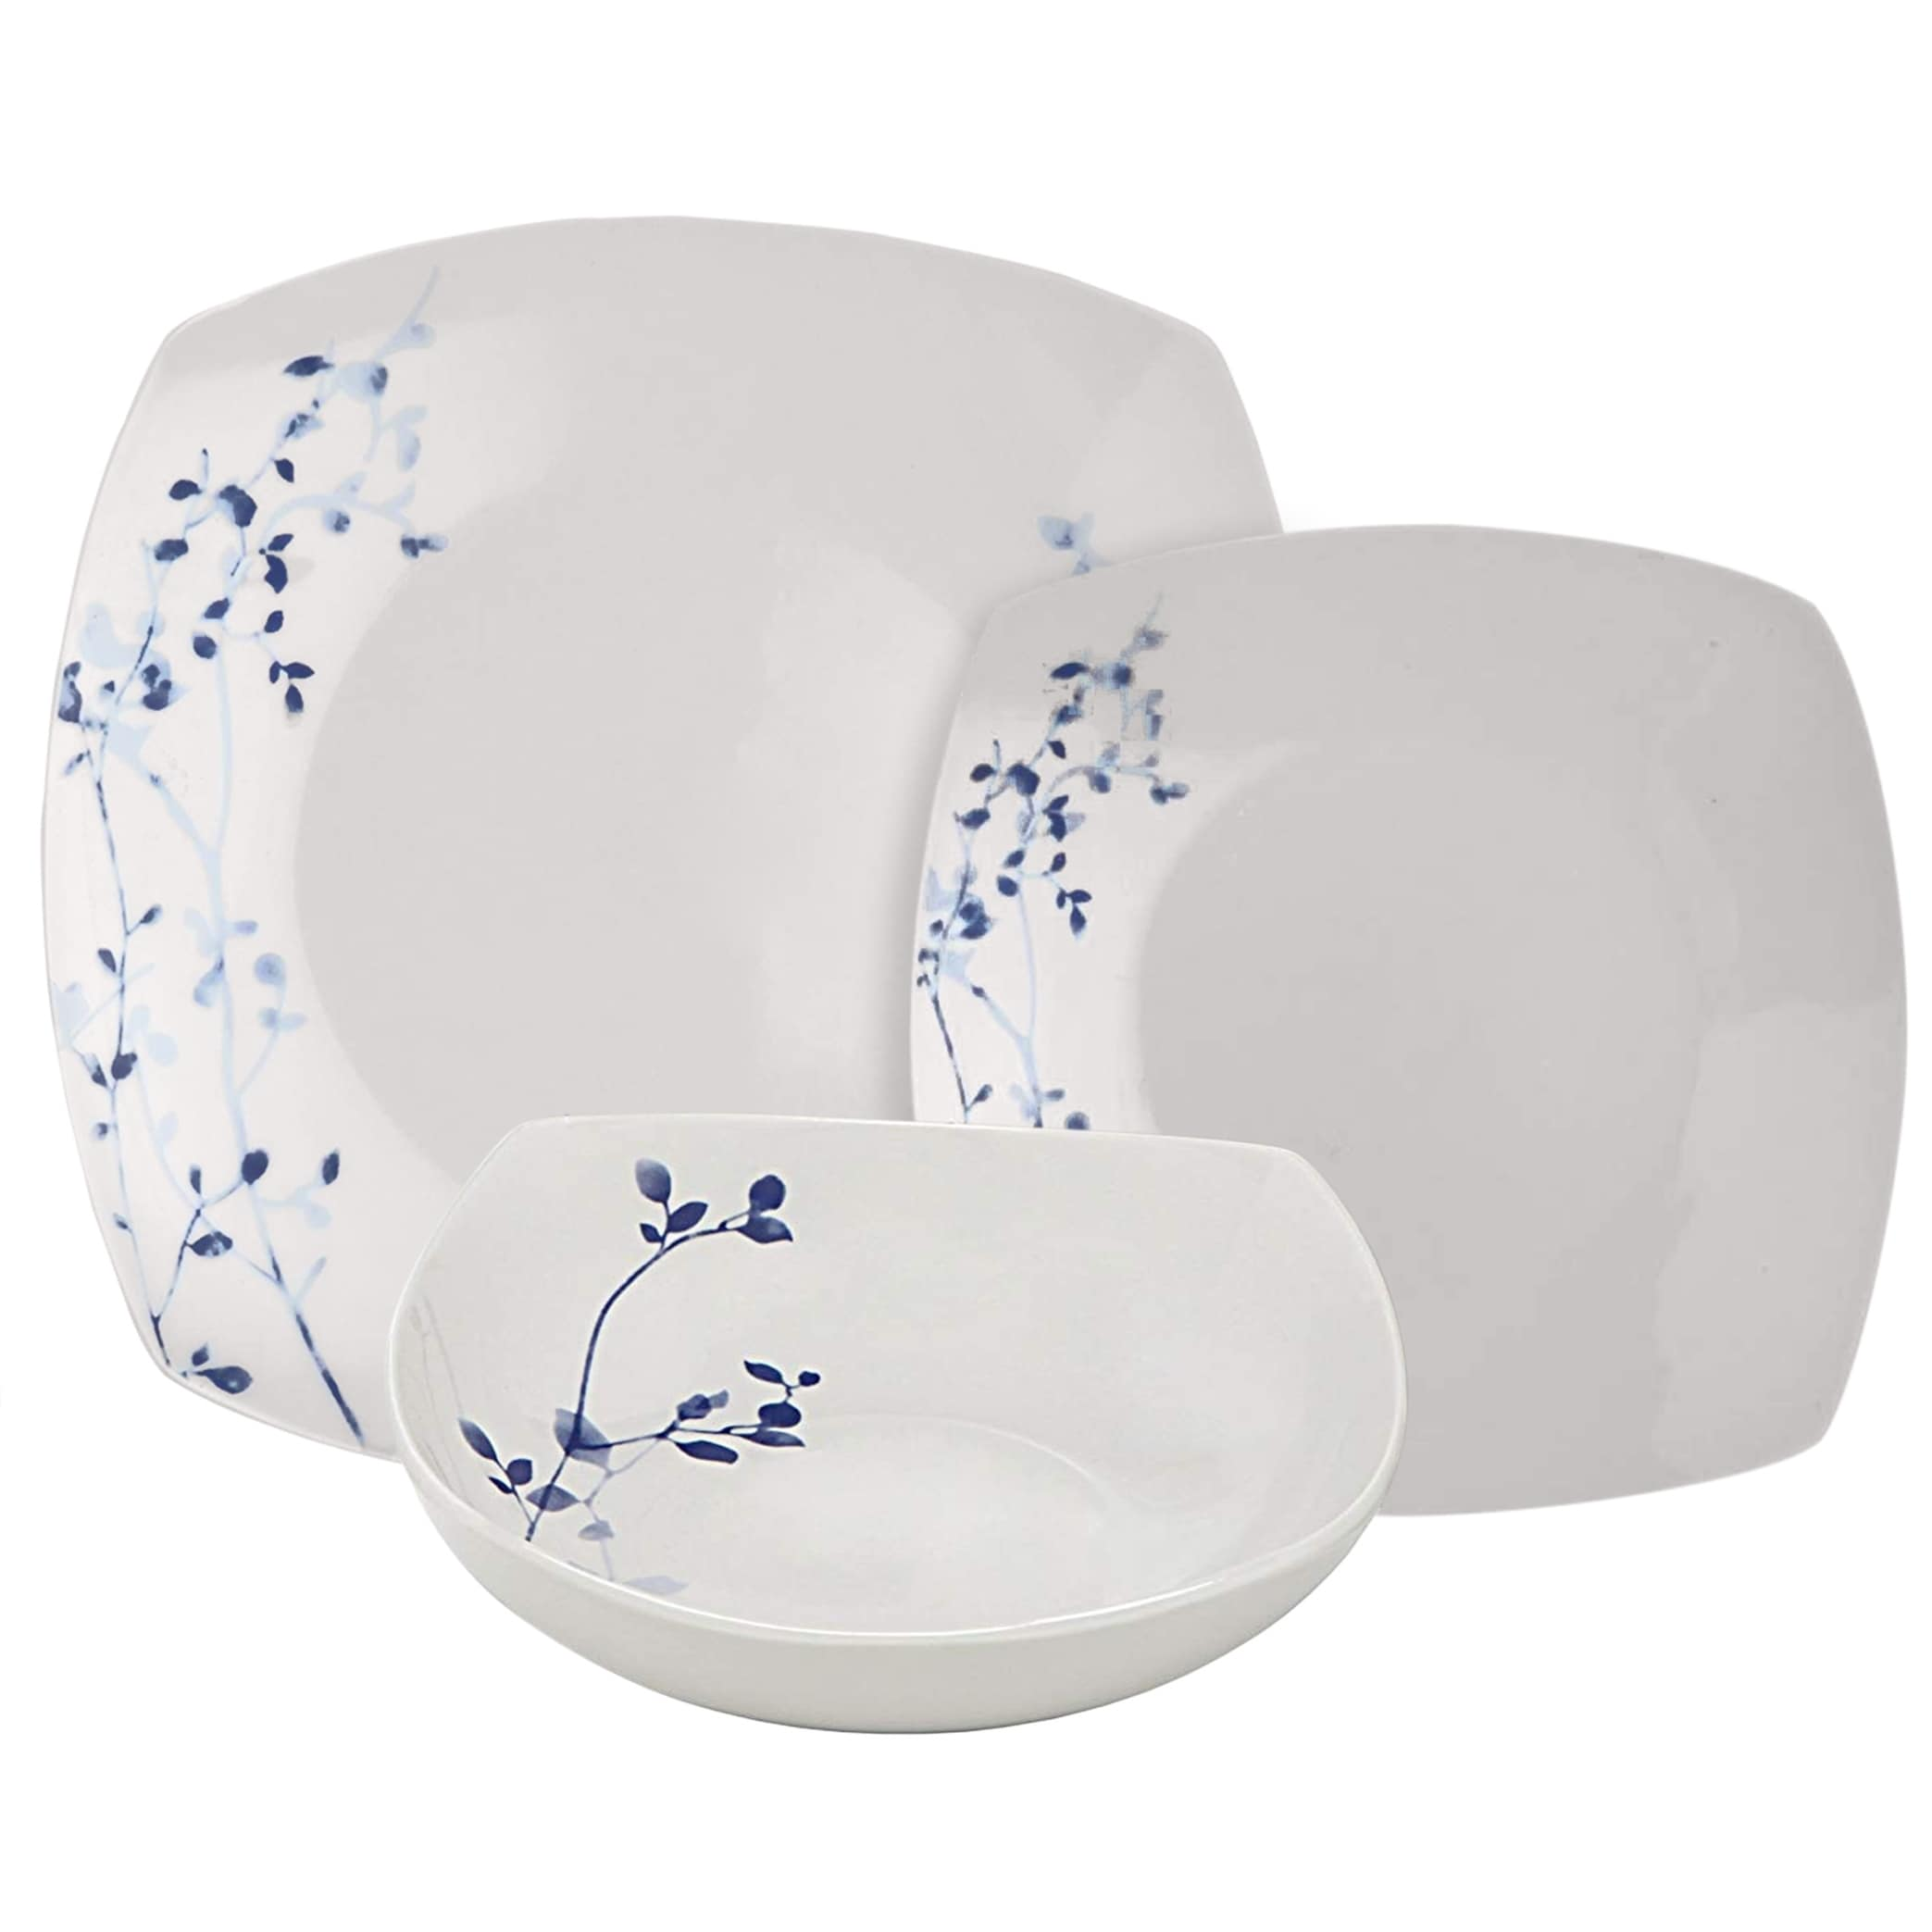 Dinnerware Sets 6 Each Dishwasher Oven Safe Salad Plate Soup Bowl Birds In Forest Collection Microwave 608410088016 Melange Coupe 18 Piece Porcelain Dinnerware Set Service For 6 Dinner Plate Home Kitchen